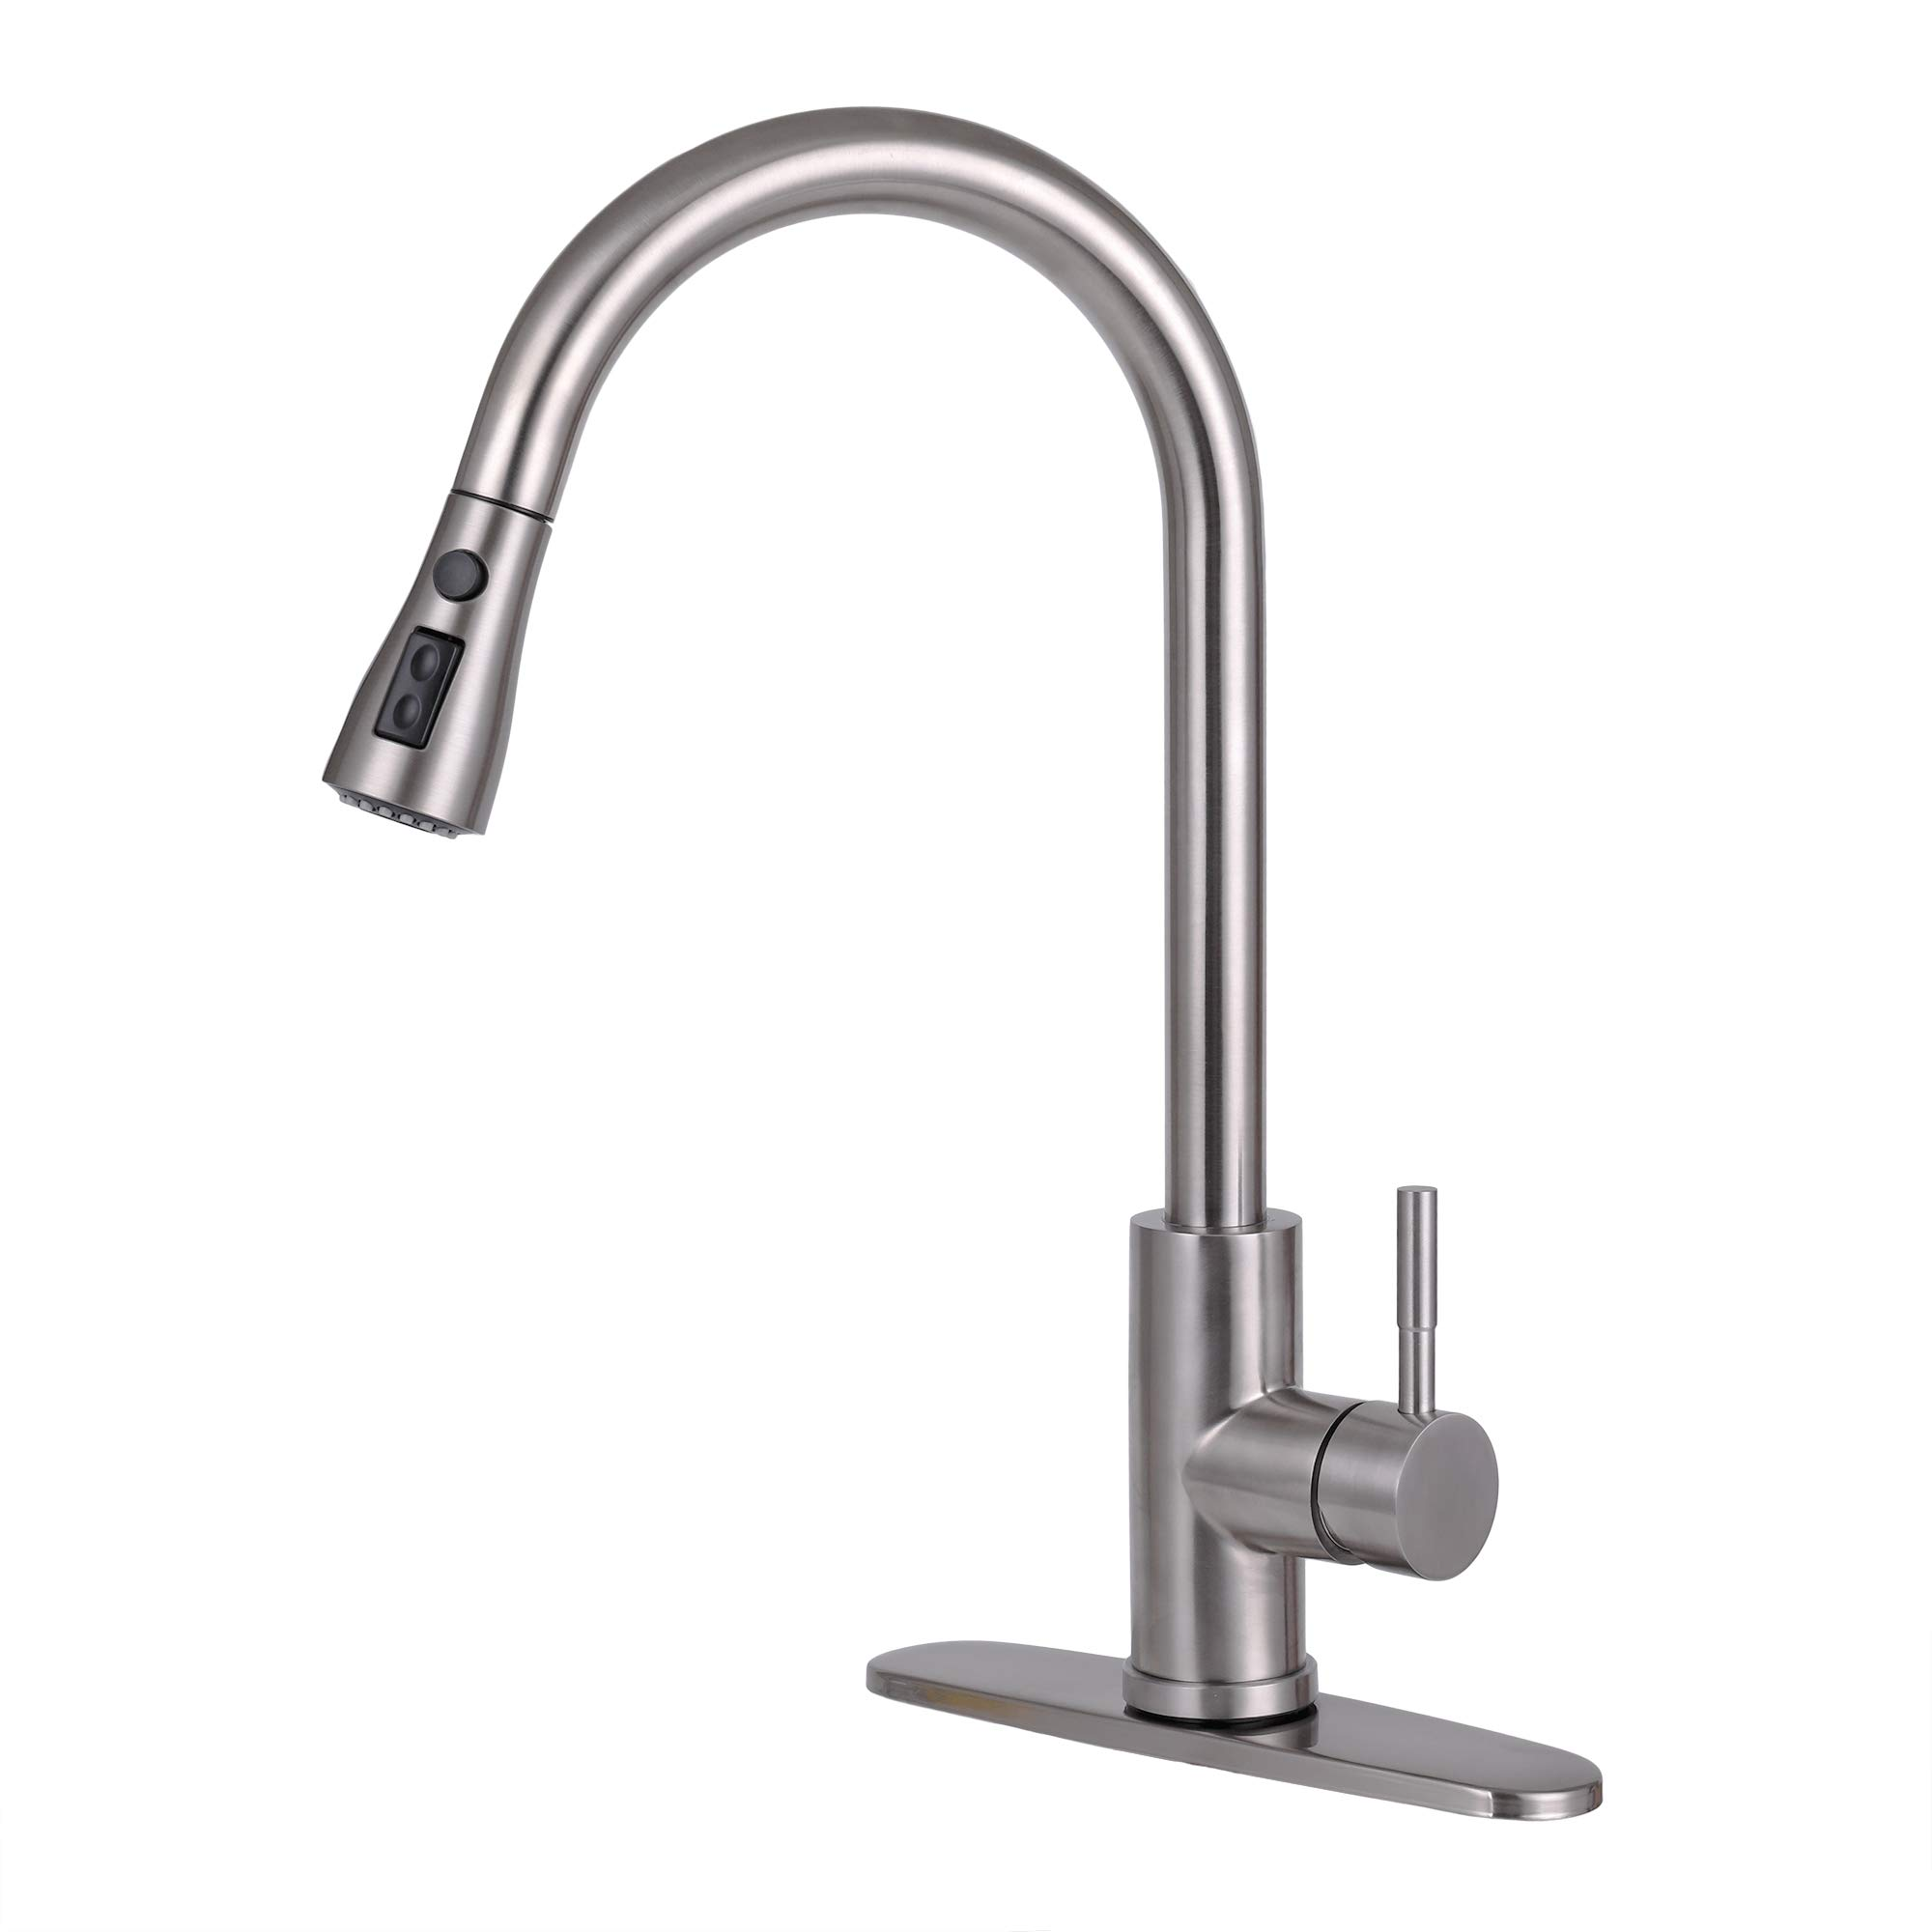 Kitchen Faucets With Pull Down Sprayer, Permande 360 Degree Commercial Single Handle Brushed Nickel Kitchen Faucet, Single Level High Arch Pull Out Stainless Steel Kitchen Sink Faucets with Deck Plate